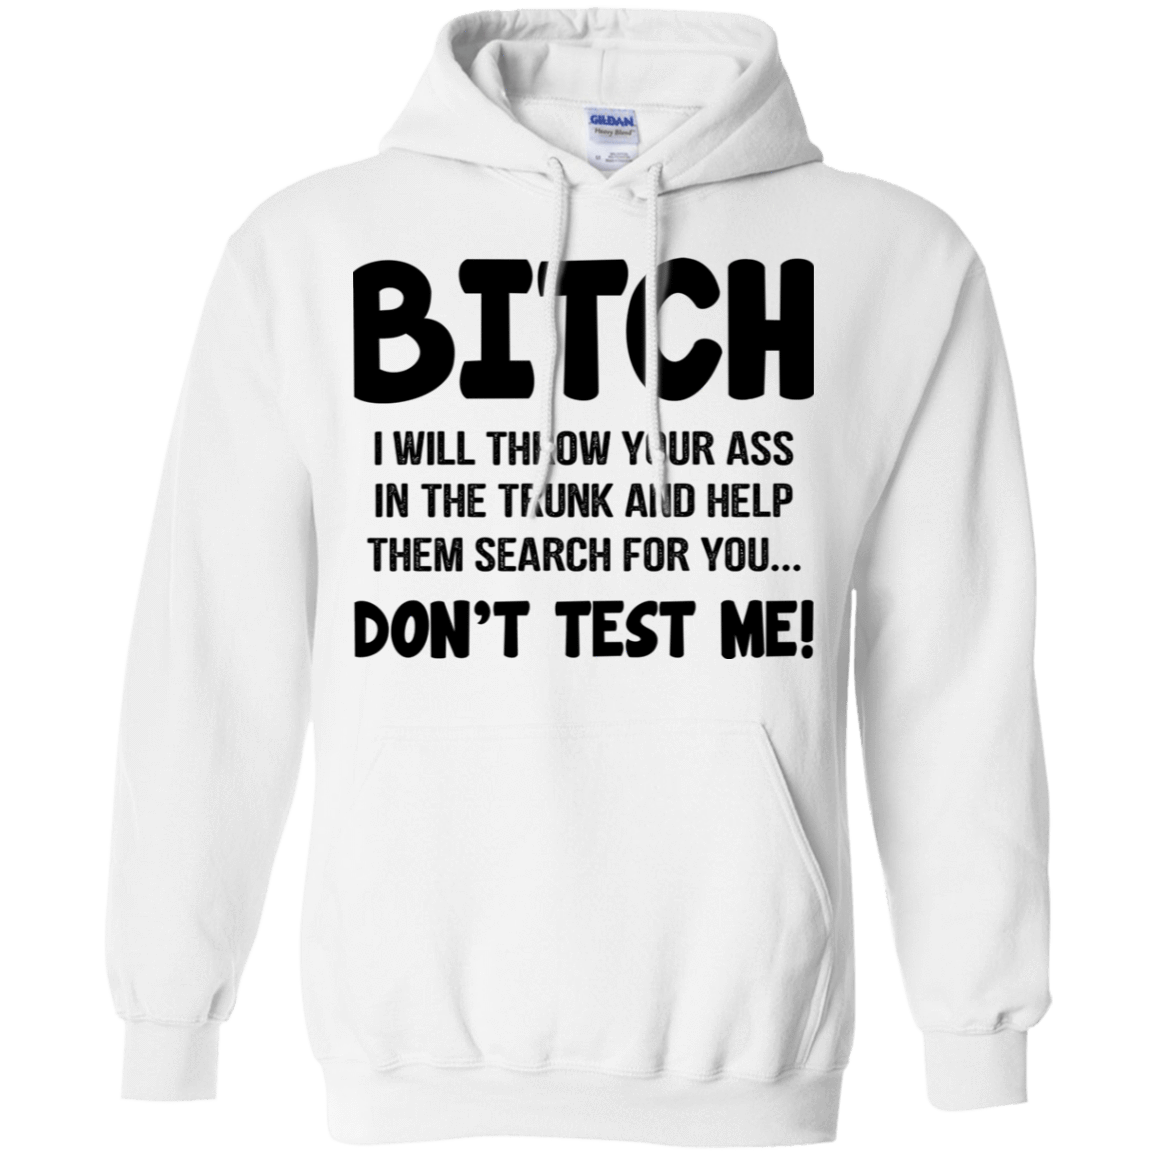 Bitch I Will Throw Your Ass In The Trunk And Help Them Search For You … Don't Test Me T-Shirts, Hoodie, Tank 541-4744-78811046-23183 - Tee Ript